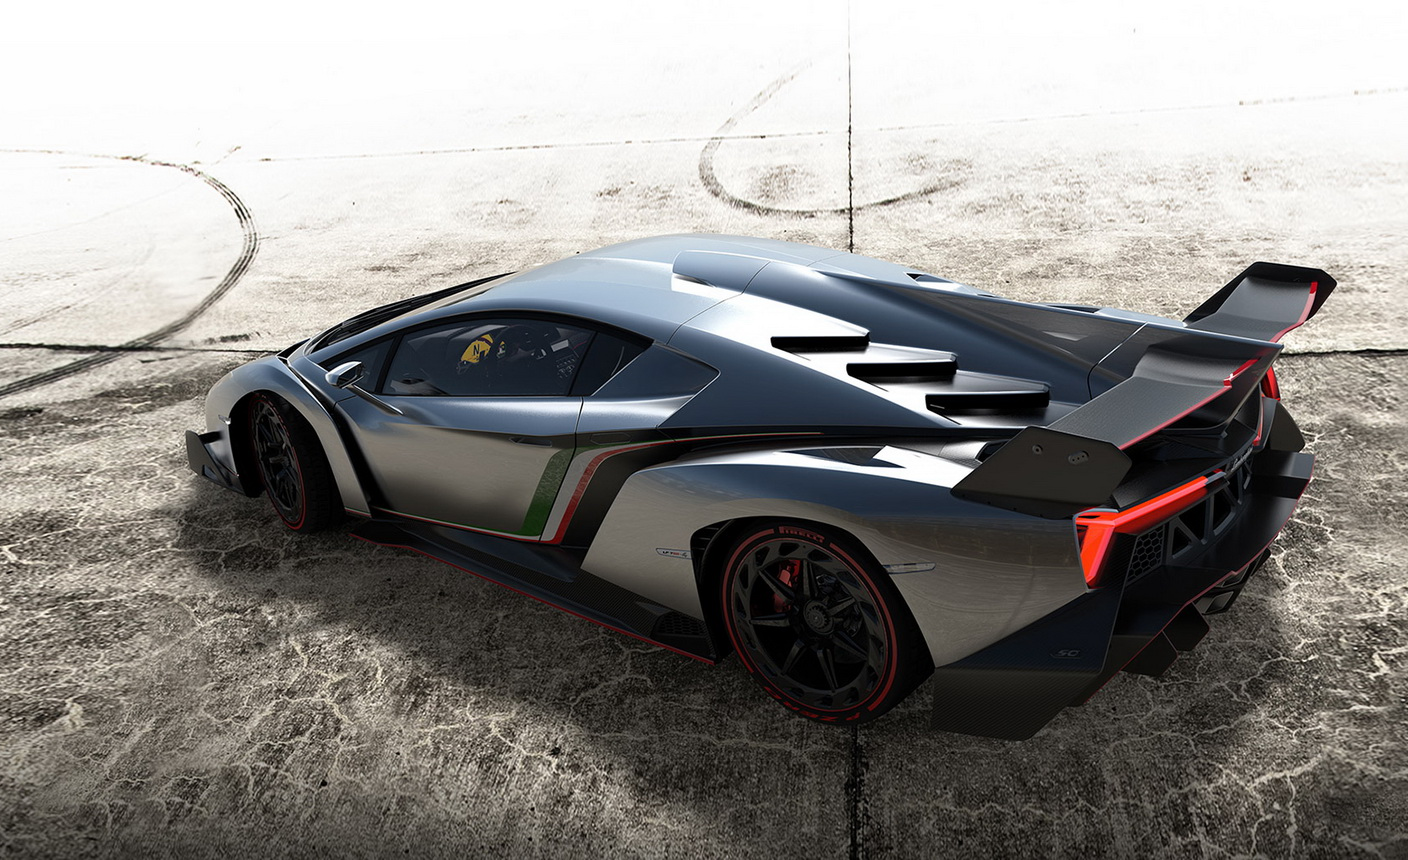 Italy Made These Special Cars In Single Digits | HotCars